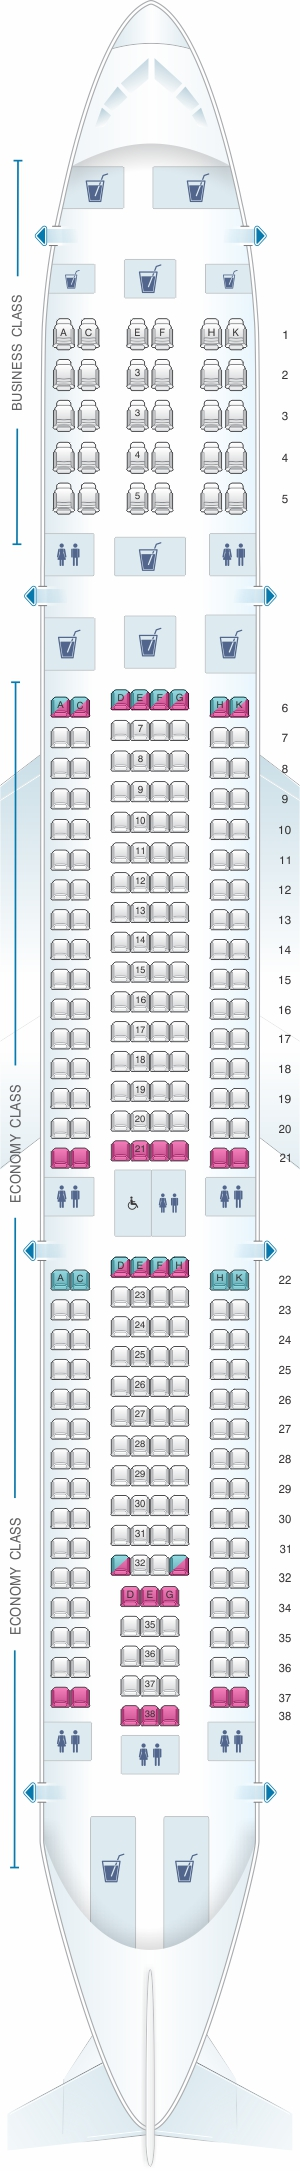 Seat map for Air Canada Airbus A330 300 config.2